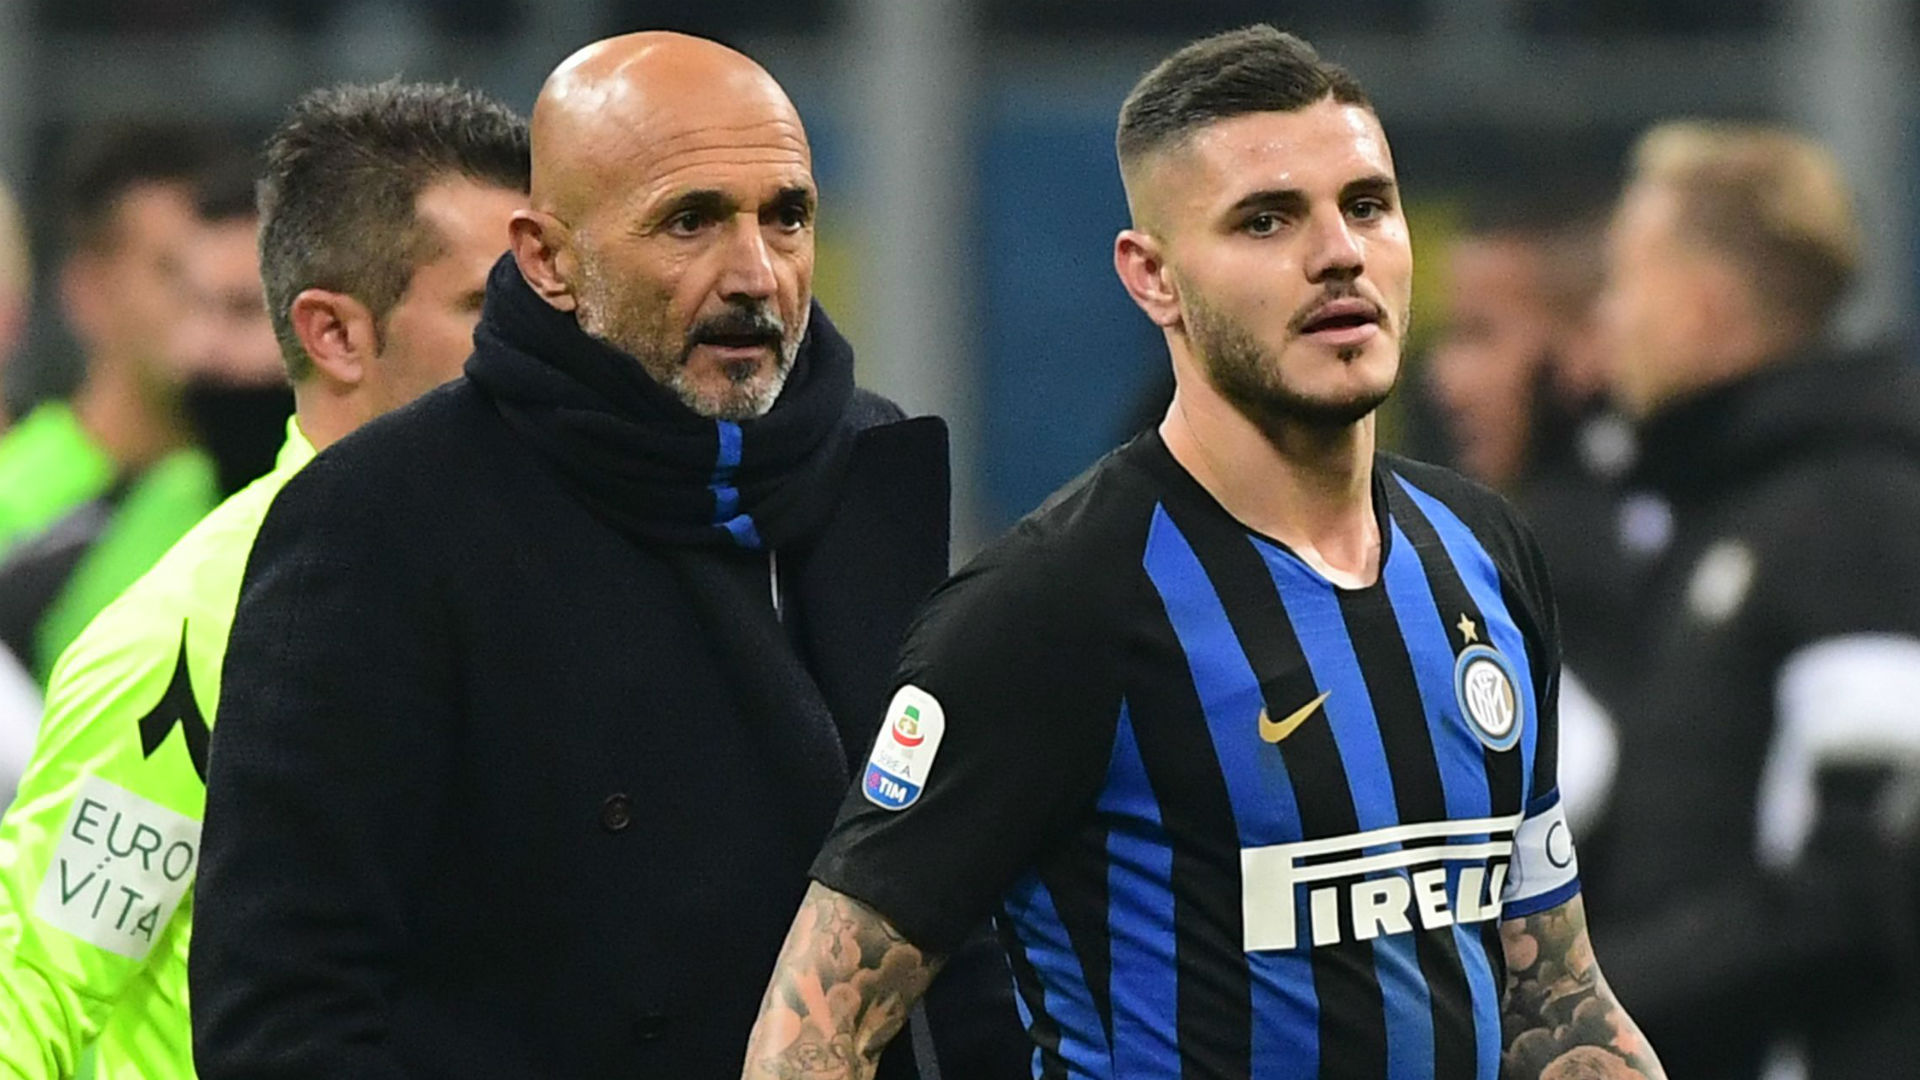 Mauro Icardi and the Internazionale conundrum